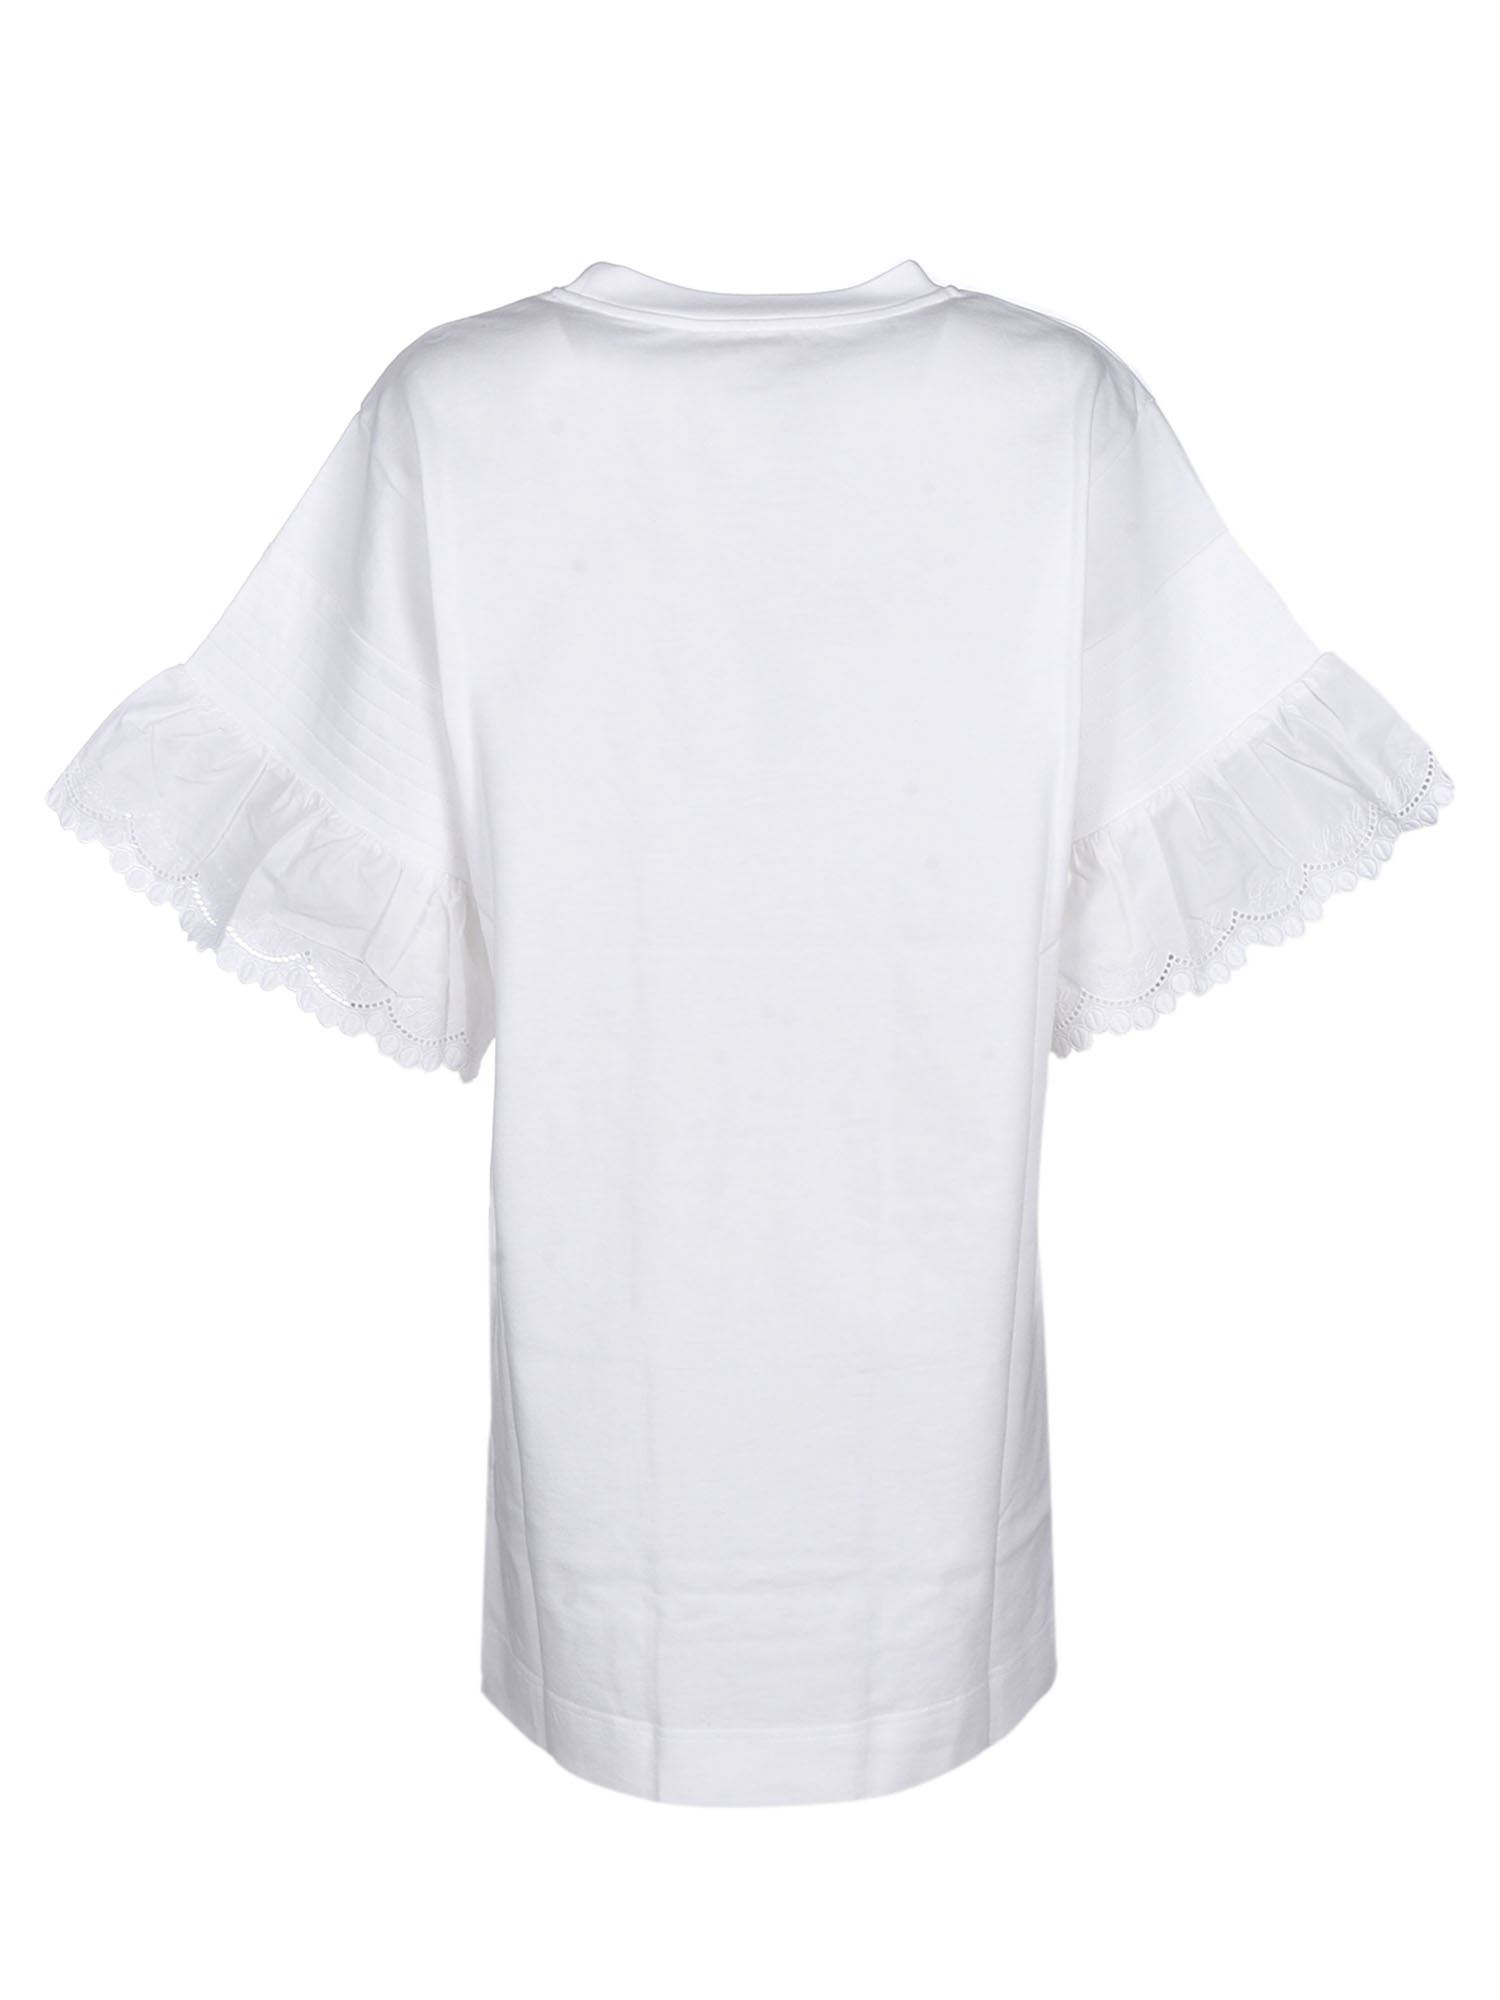 SEE BY CHLOÉ Cottons BUTTERFLY T-SHIRT DRESS IN WHITE